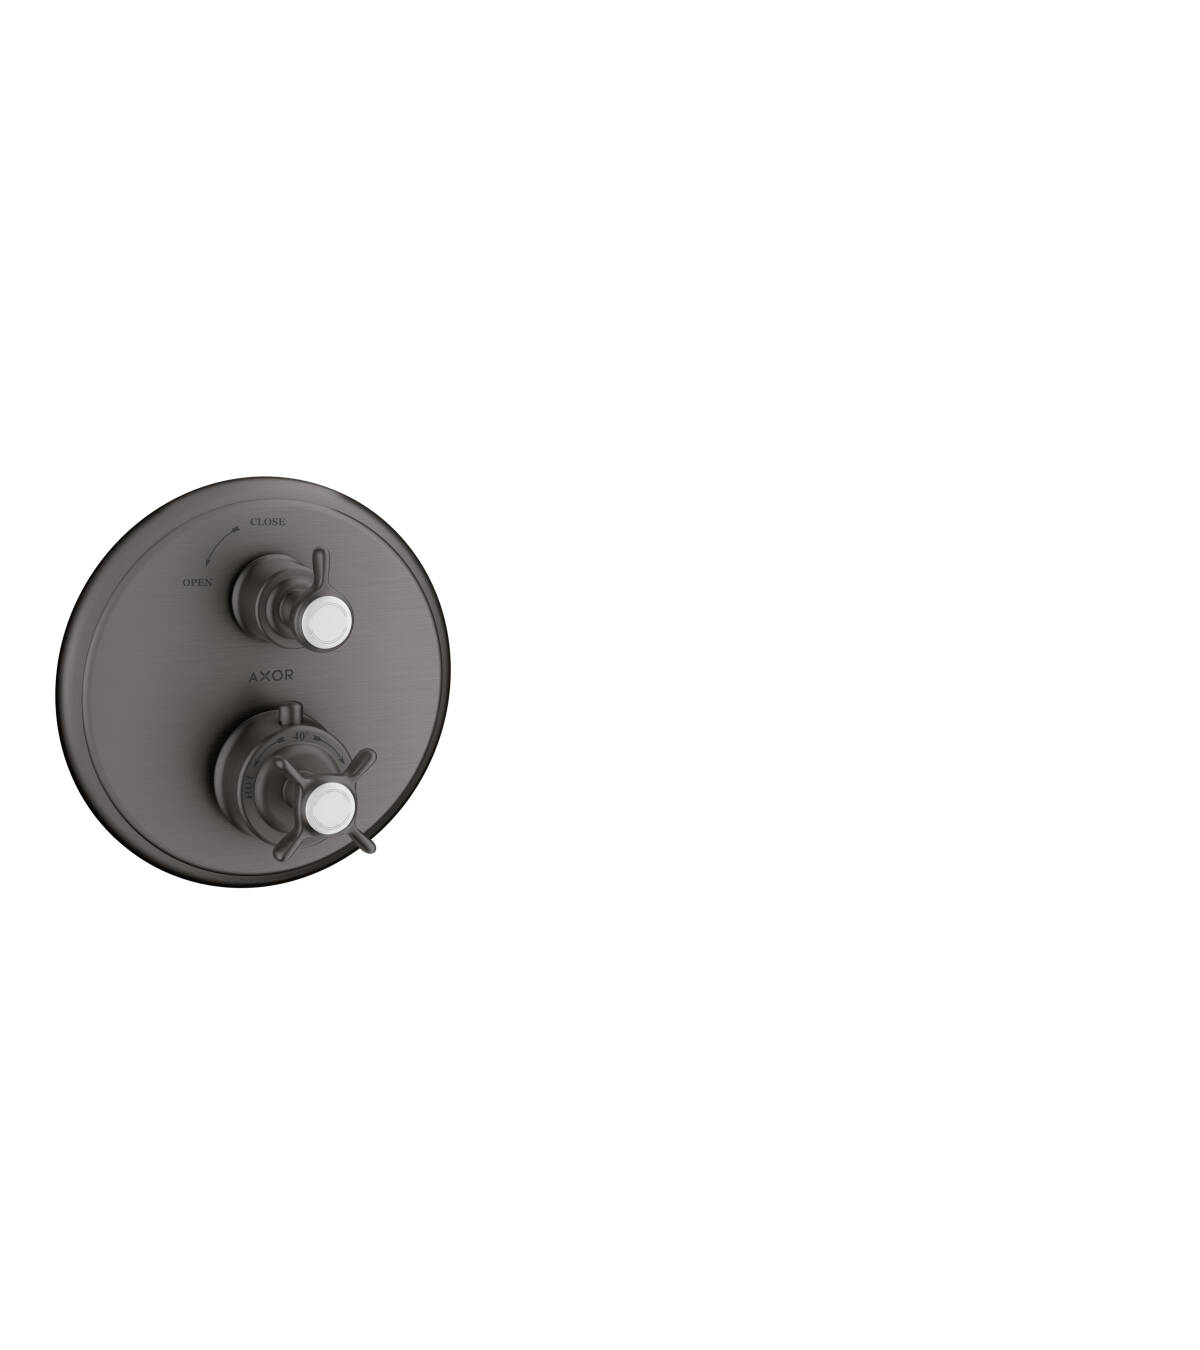 Thermostat for concealed installation with cross handle and shut-off valve, Brushed Black Chrome, 16800340